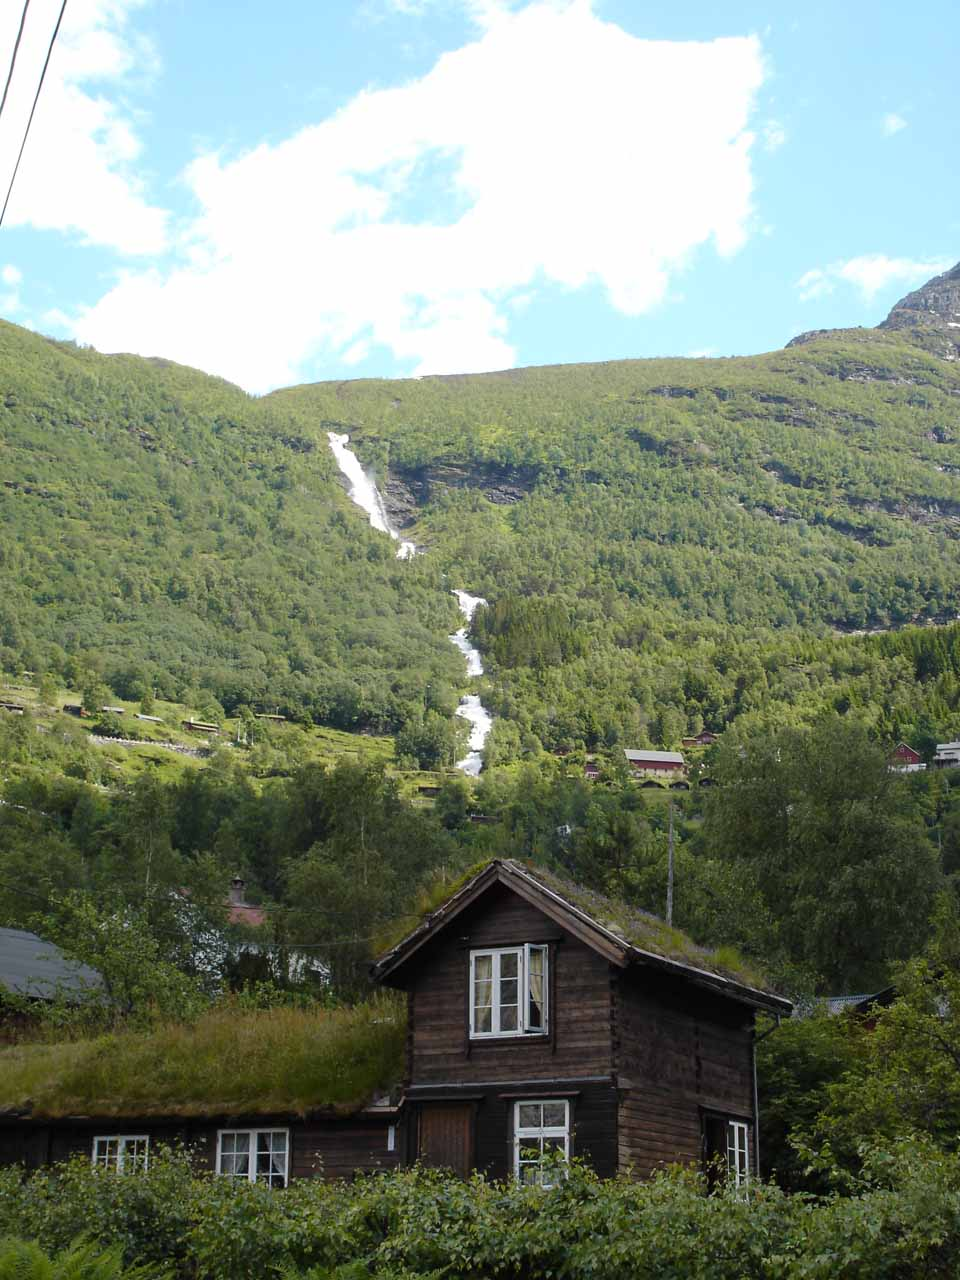 After our cruise ended, we noticed this view of Grinddalsfossen on our way up towards the turnoff at Hole